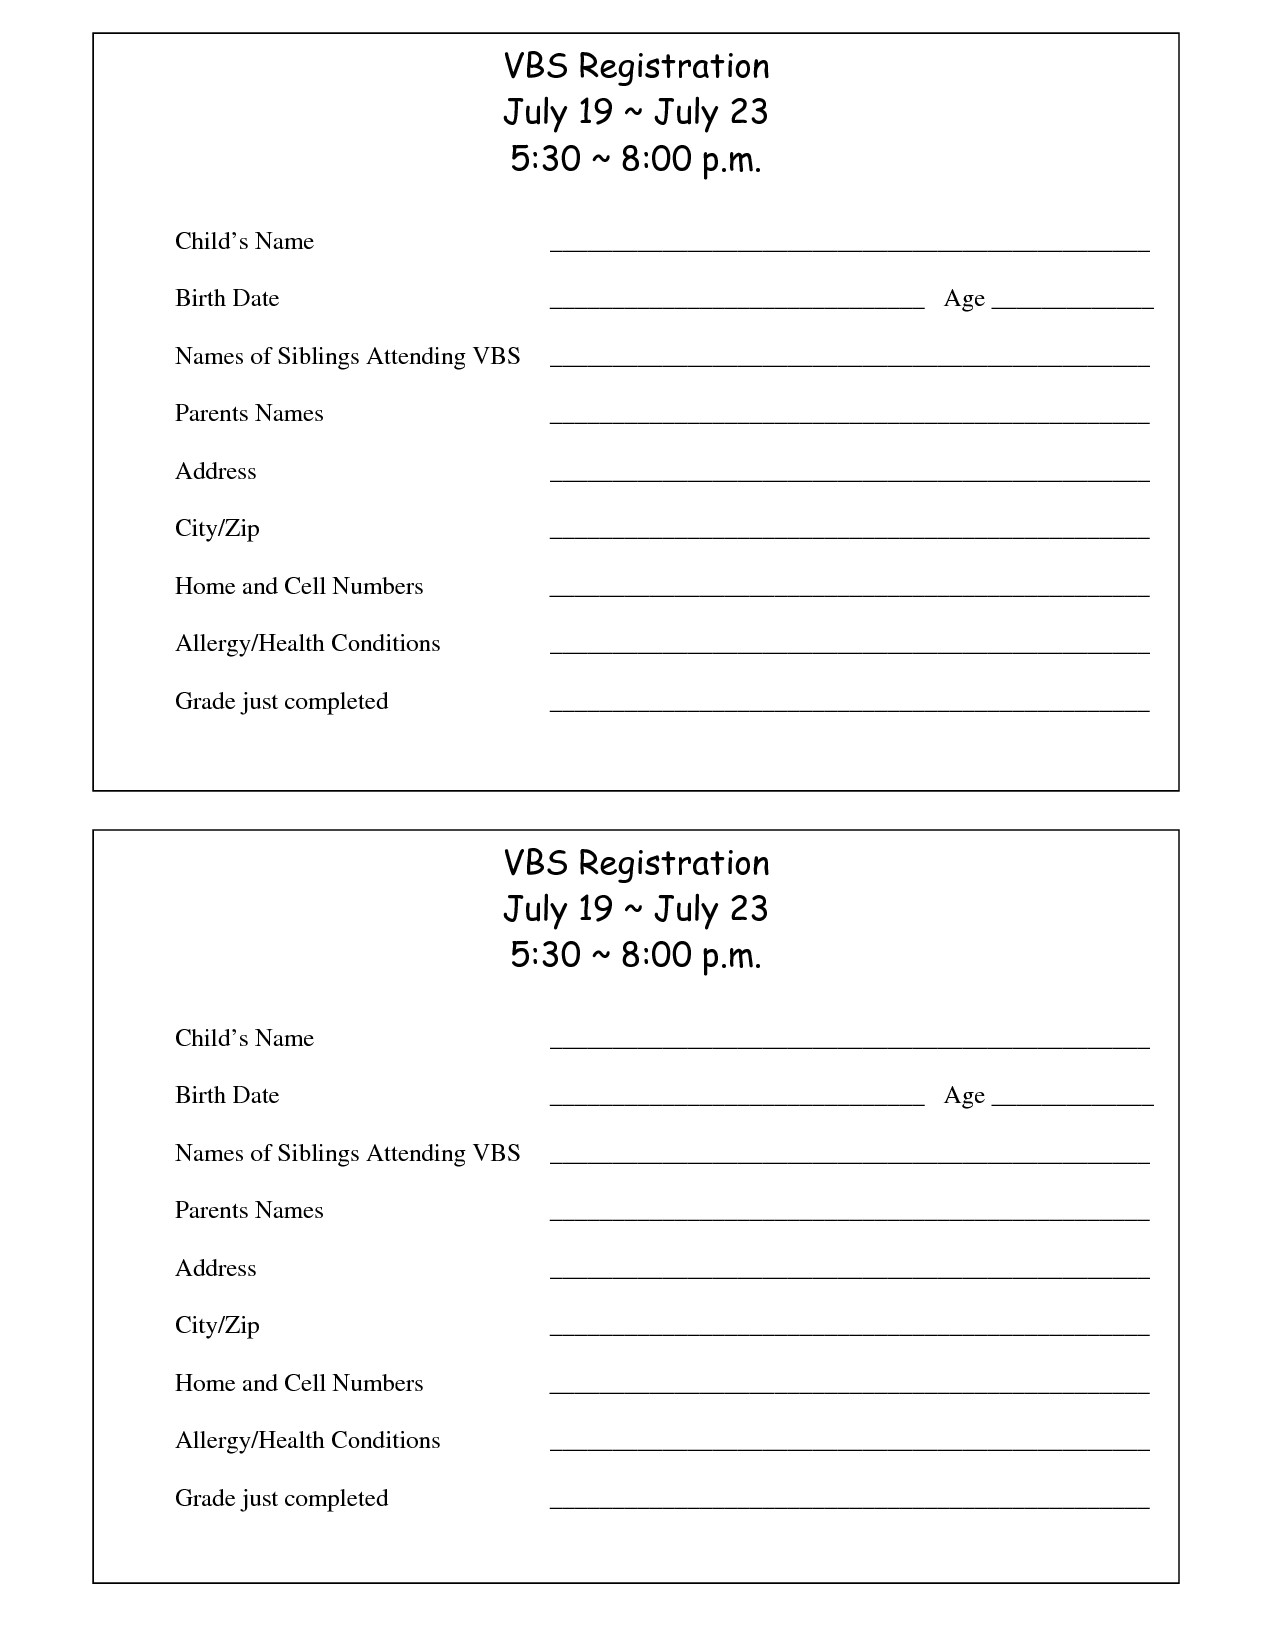 Free Registration forms Template Printable Vbs Registration form Template